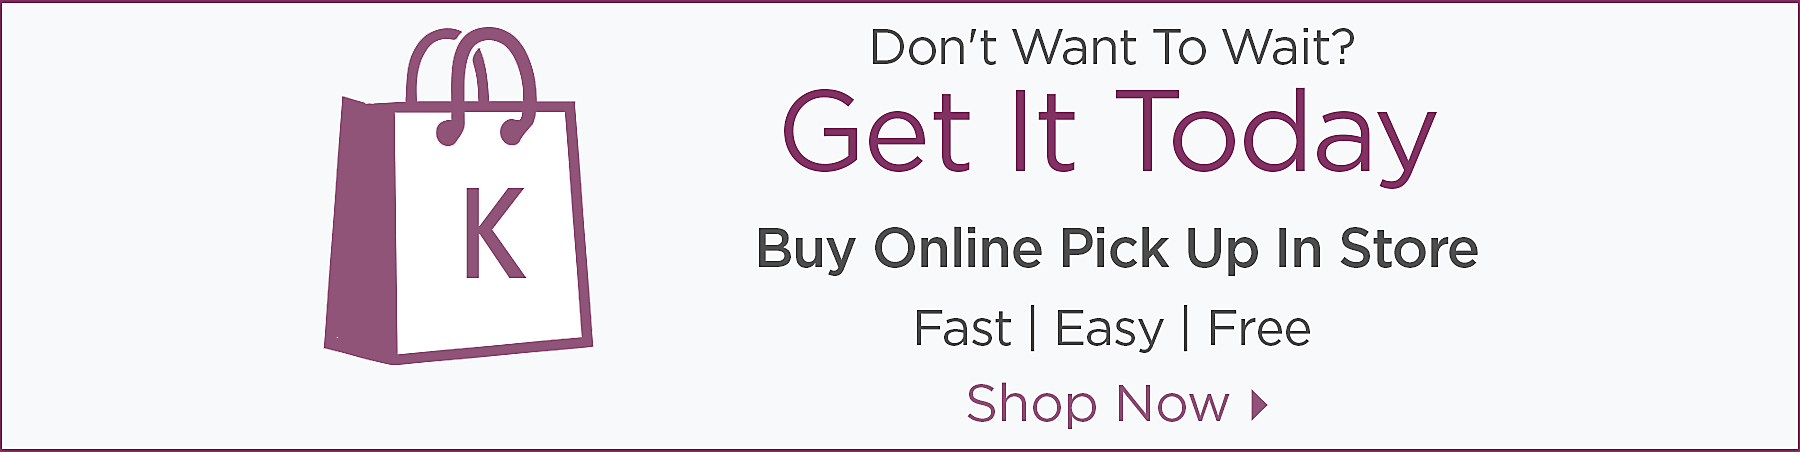 Don't want to wait? Get it today. - Buy online pick up in store - Fast, East, Free - Shop Now